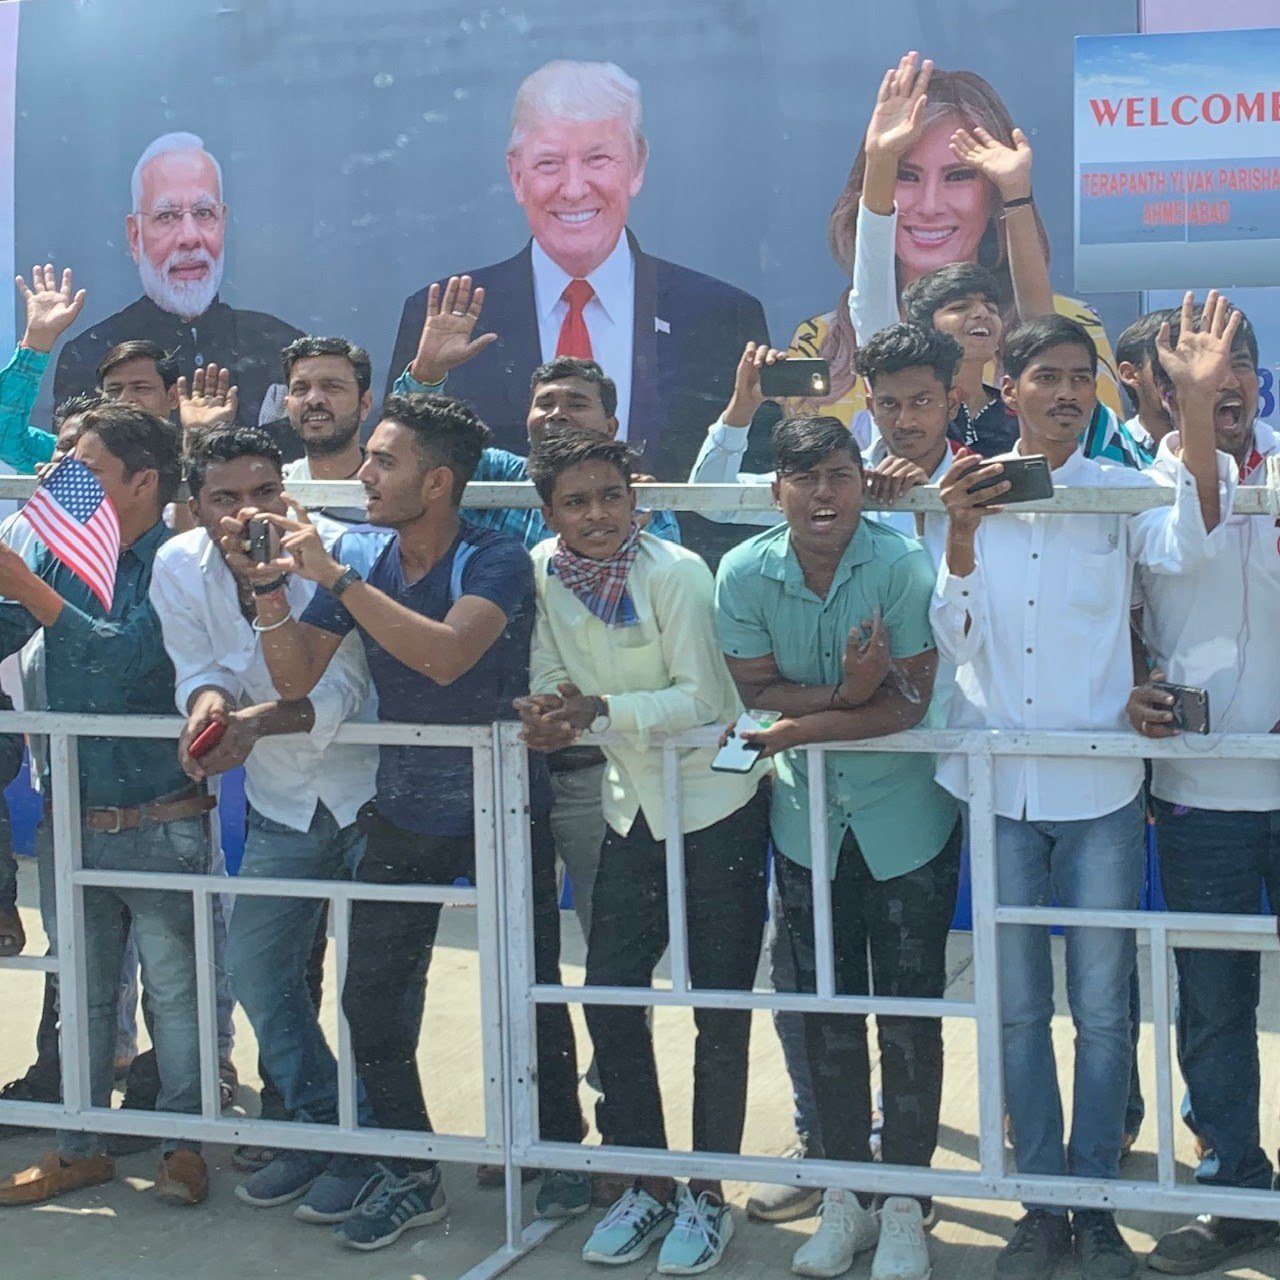 Indian citizens cheer as Trump's motorcade passes during his trip February 24, 2020. (White House Press Pool)